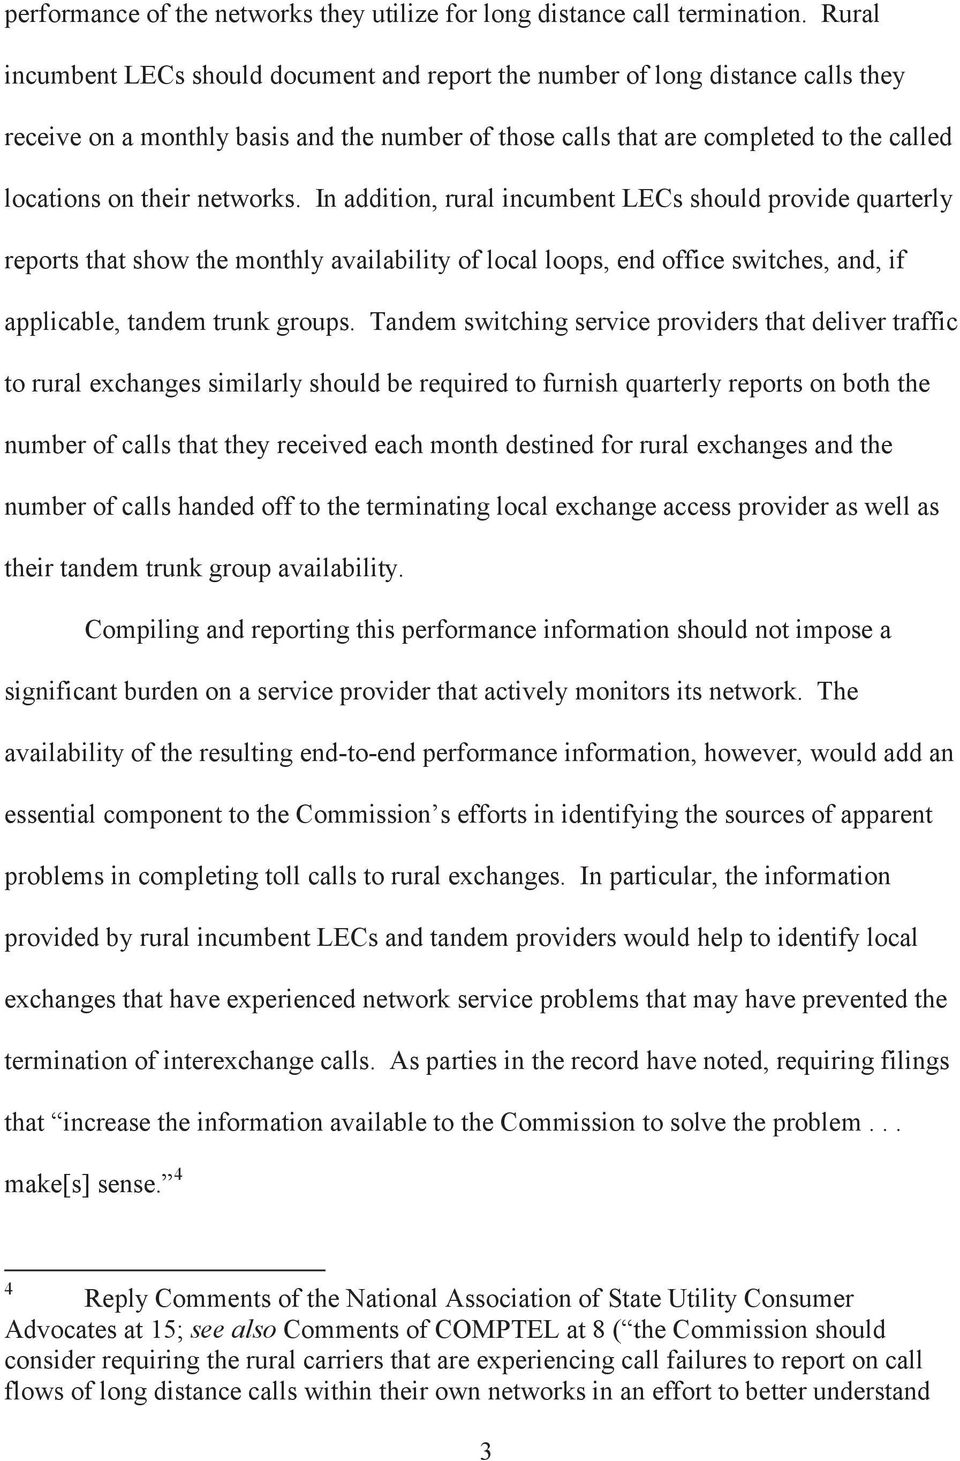 networks. In addition, rural incumbent LECs should provide quarterly reports that show the monthly availability of local loops, end office switches, and, if applicable, tandem trunk groups.